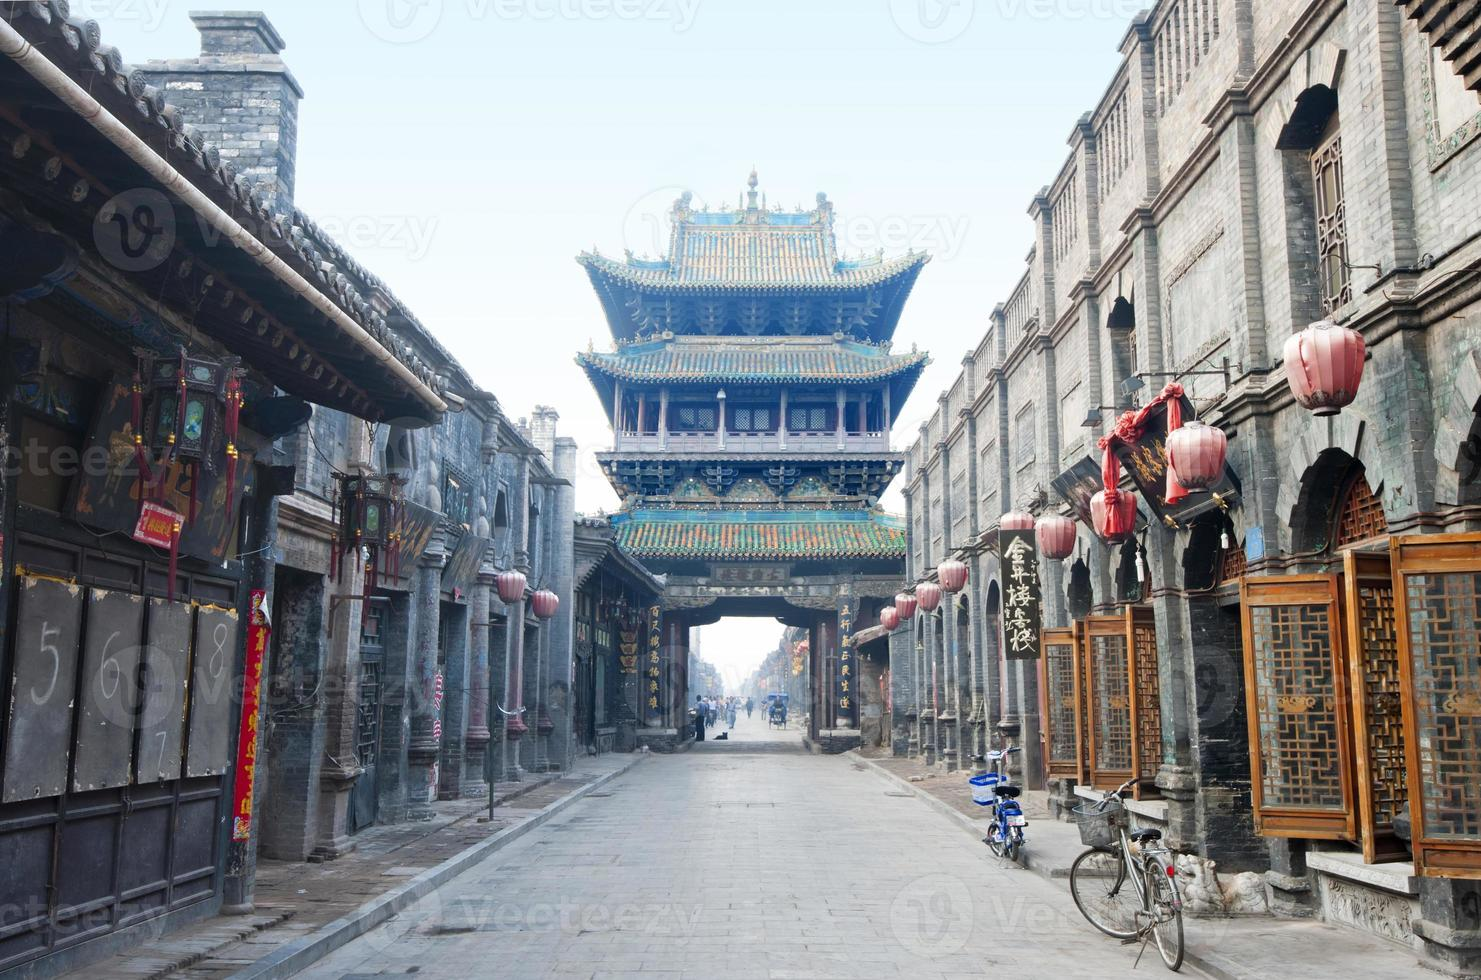 Historical Chinese town (old town of Pingyao, China) photo